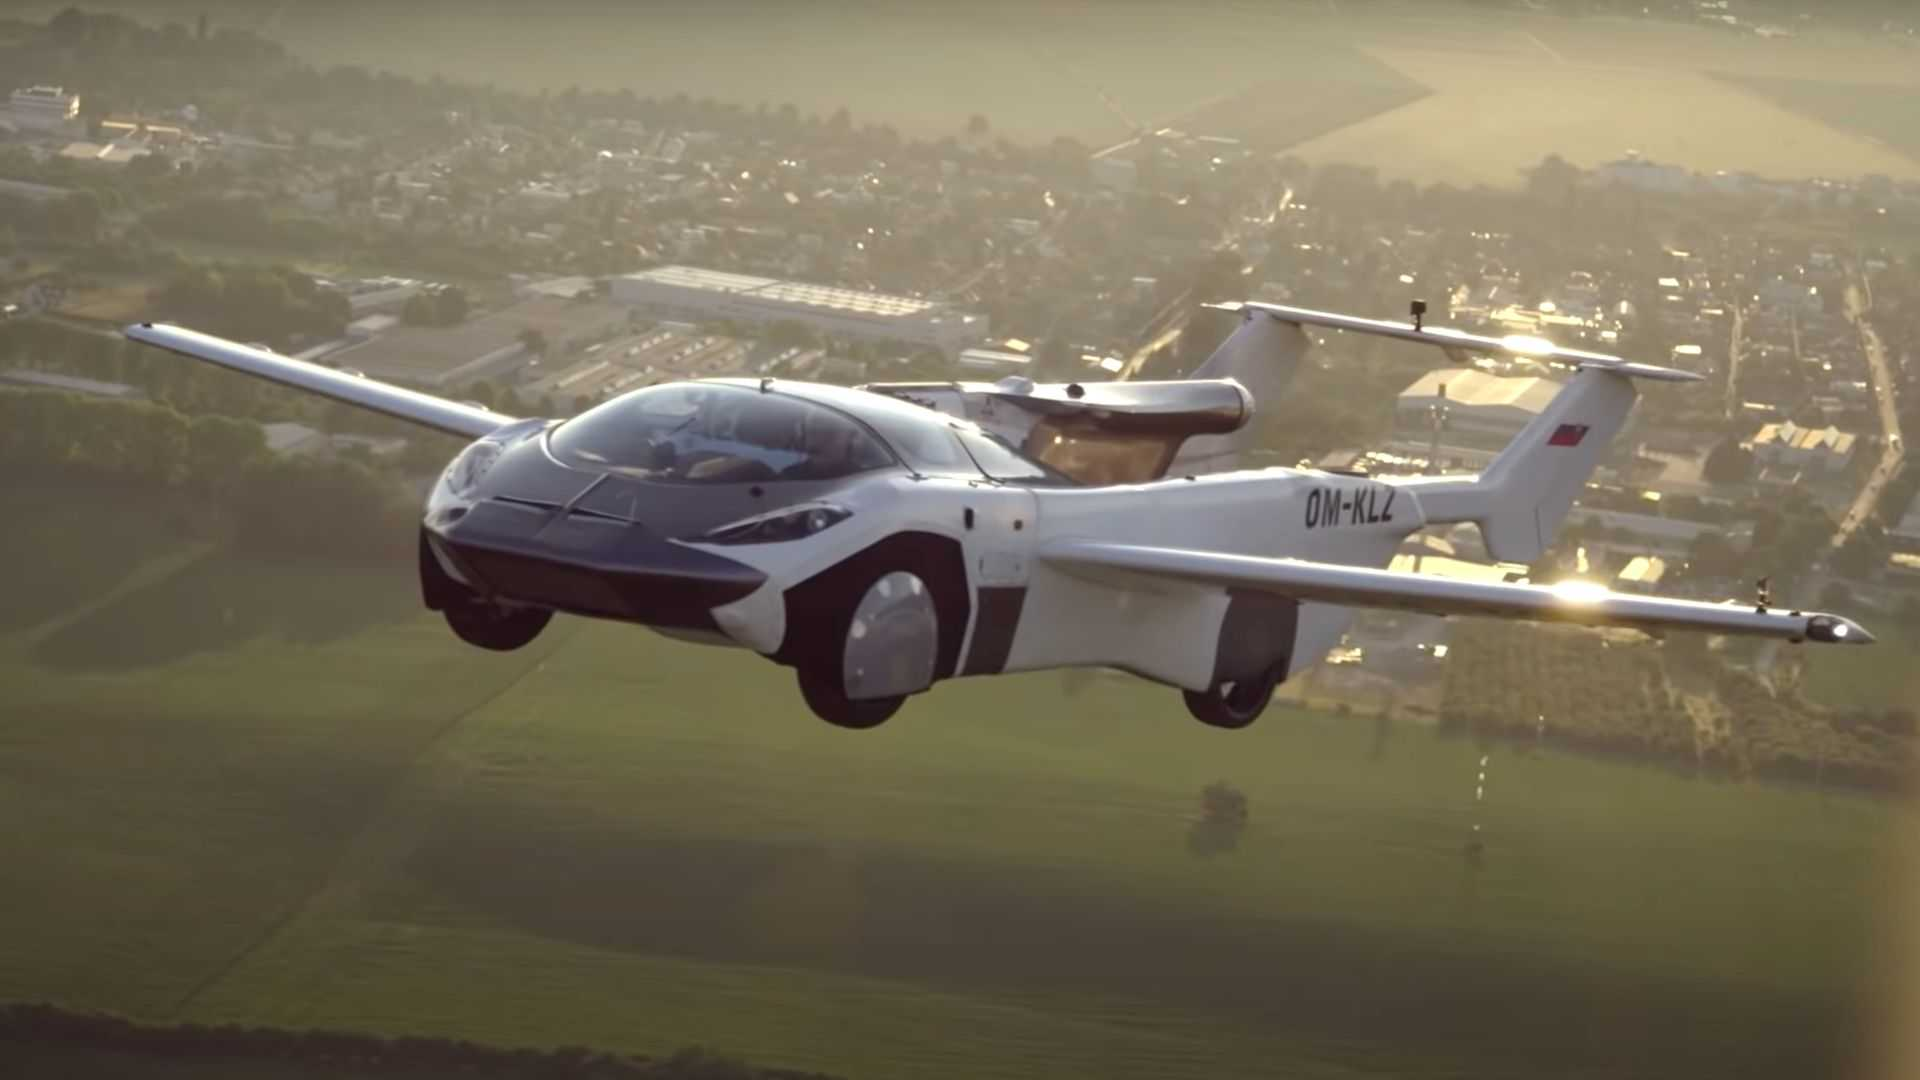 Sports car on road, plane on air.